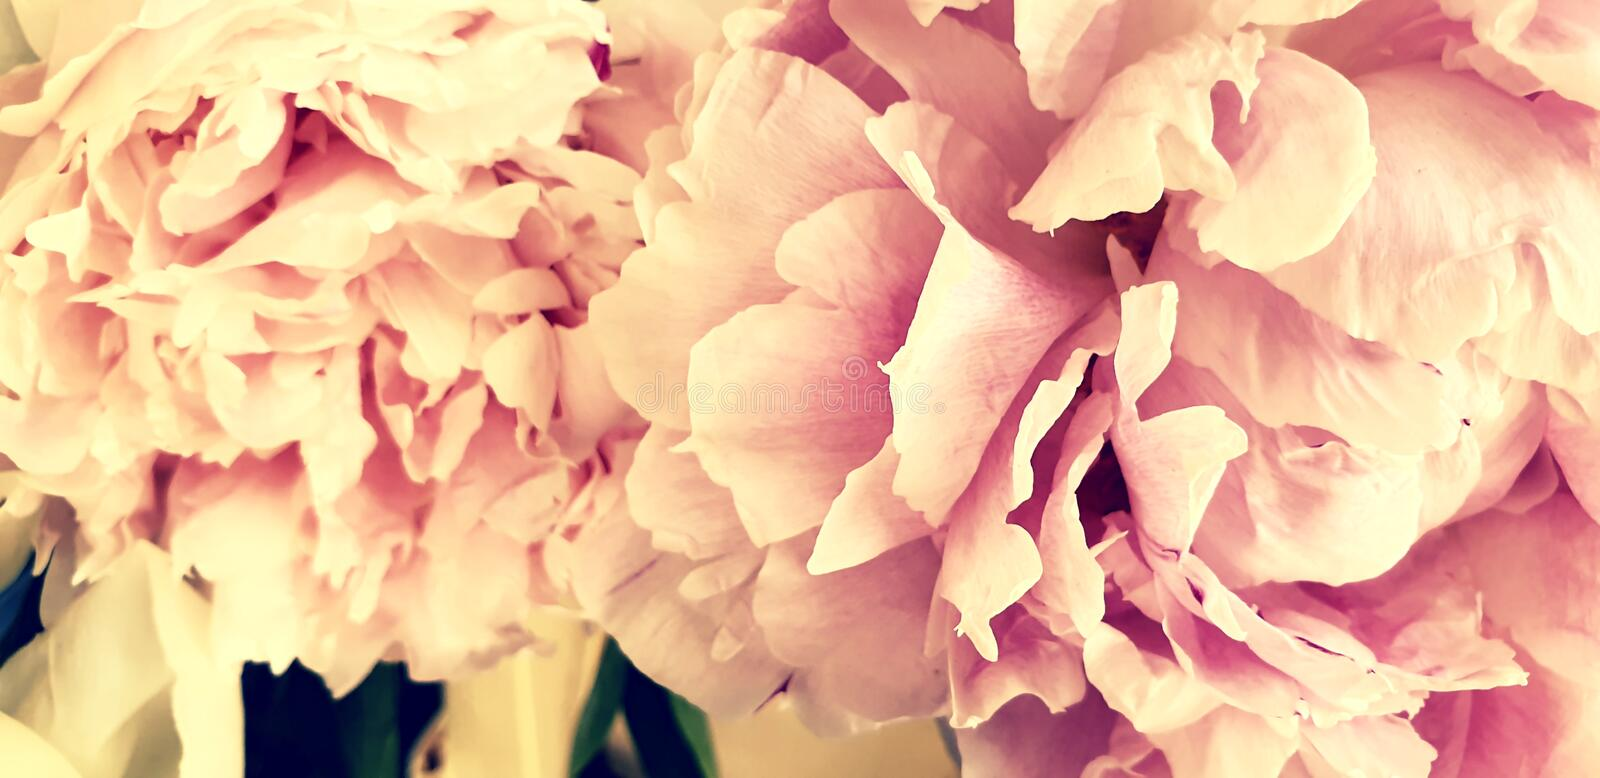 Pink peonies romantic flowers background royalty free stock image